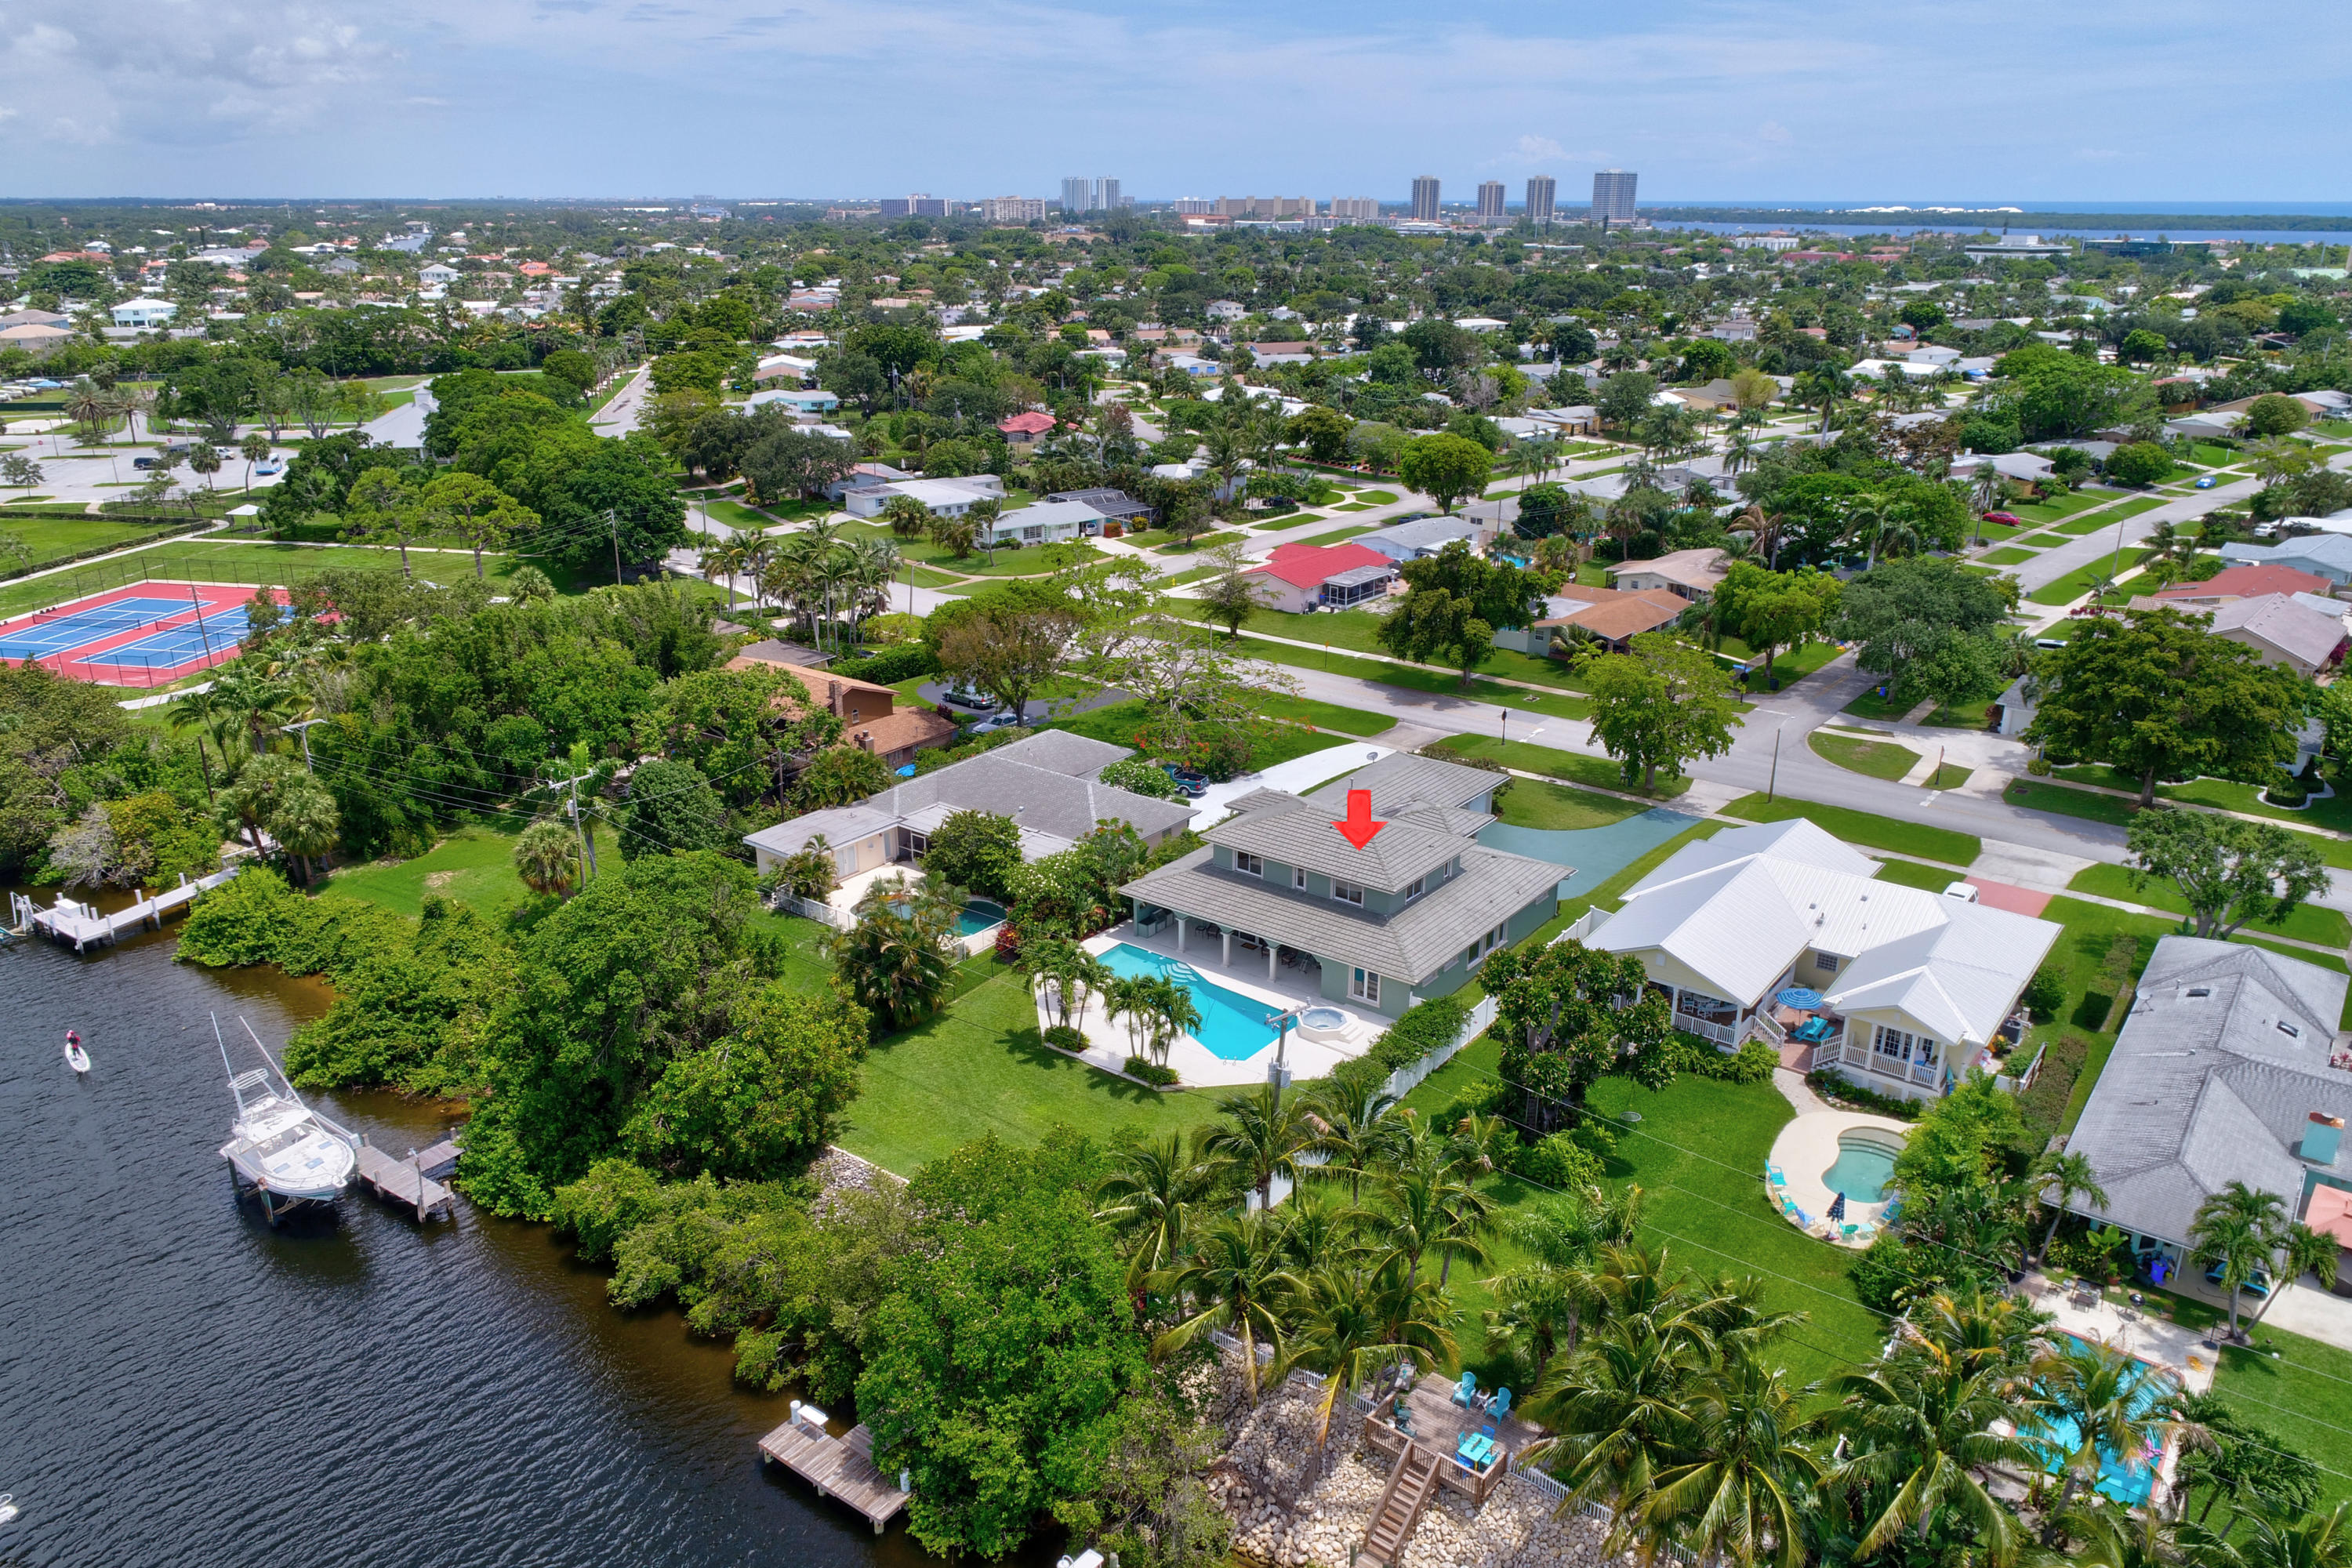 NORTH PALM BEACH VILLAGE OF PL 1  LT 32 BLK 3 &  16-42-43, NLY 9.62 FT OF C-17 CNL LYG S OF & ADJ TO